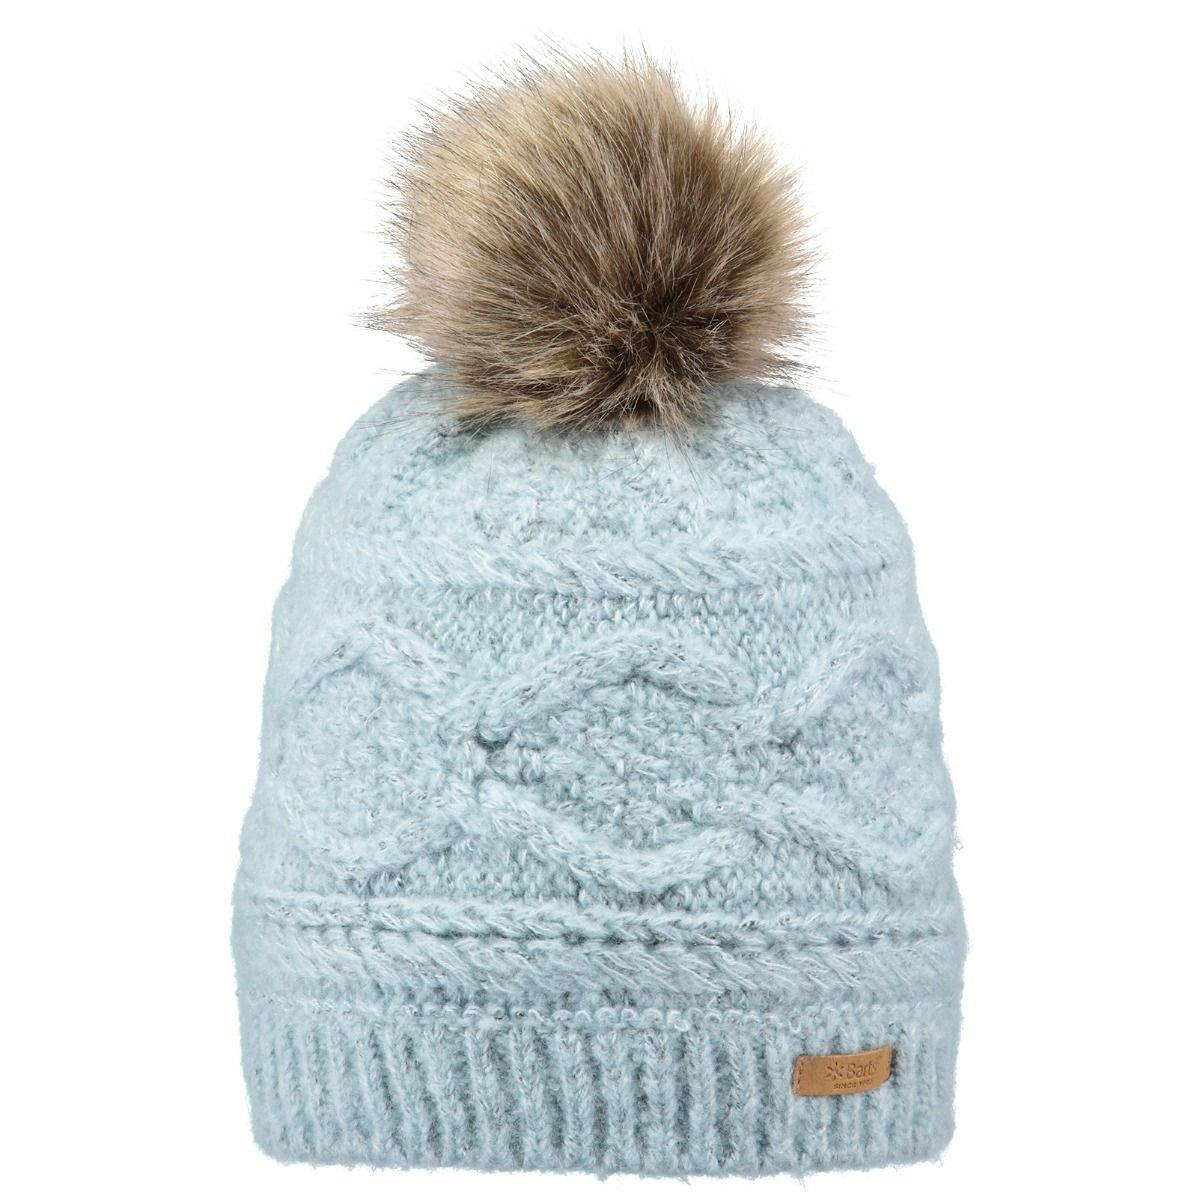 7609ad92 Barts Antonia Beanie - Blue in 2019 | Products | Beanie, Blue ...